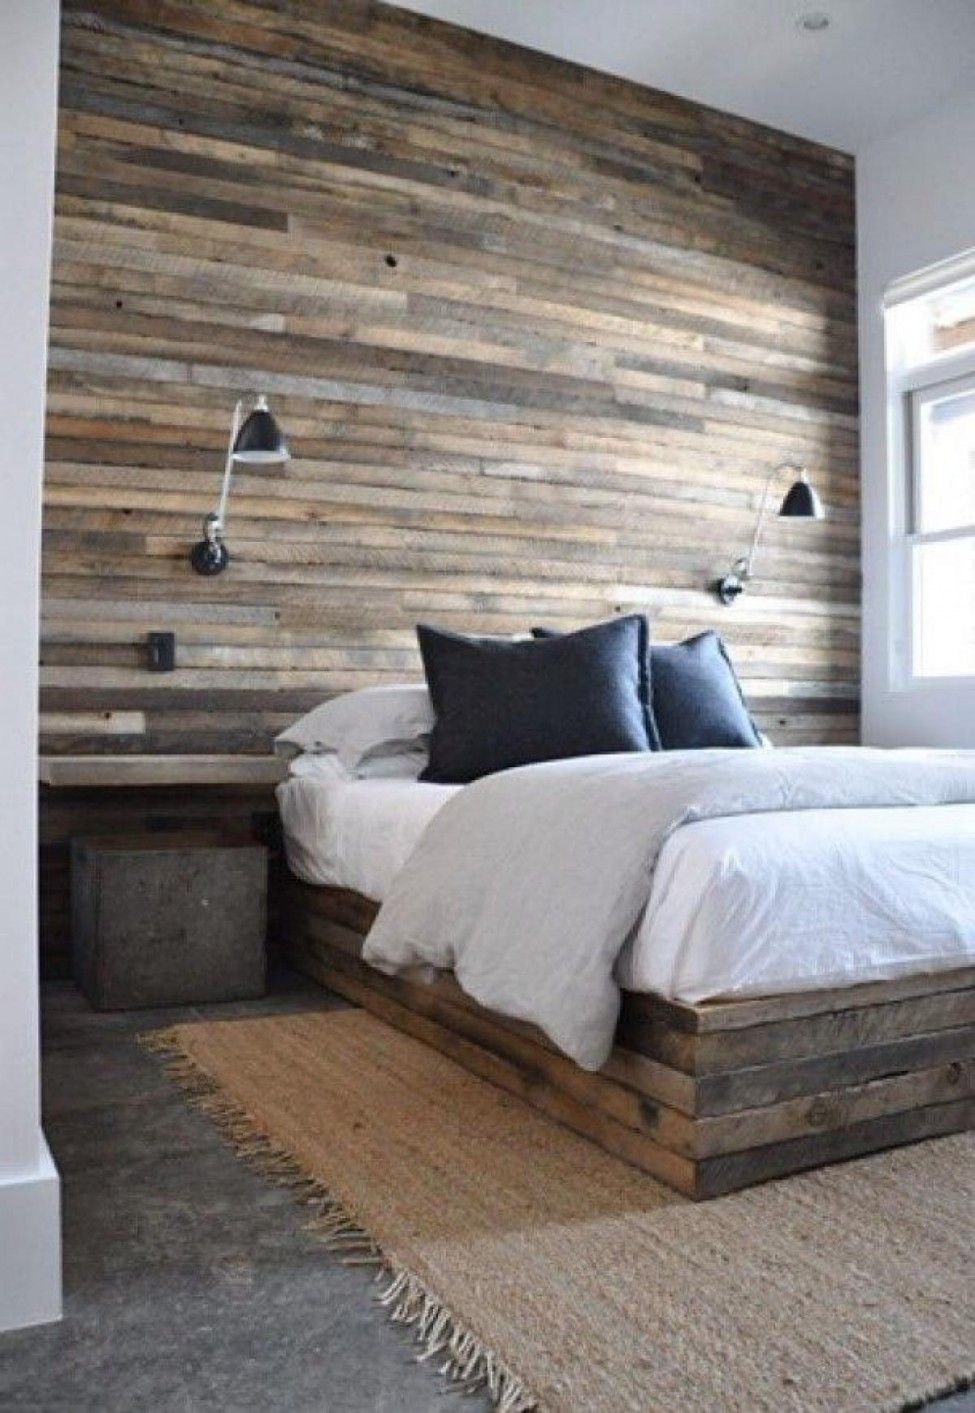 Modern And Traditional Design Ideas Bedroom Design Ideas With Wooden Interior Materials Also Wooden Wall Pane Wood Walls Bedroom Remodel Bedroom Rustic Bedroom